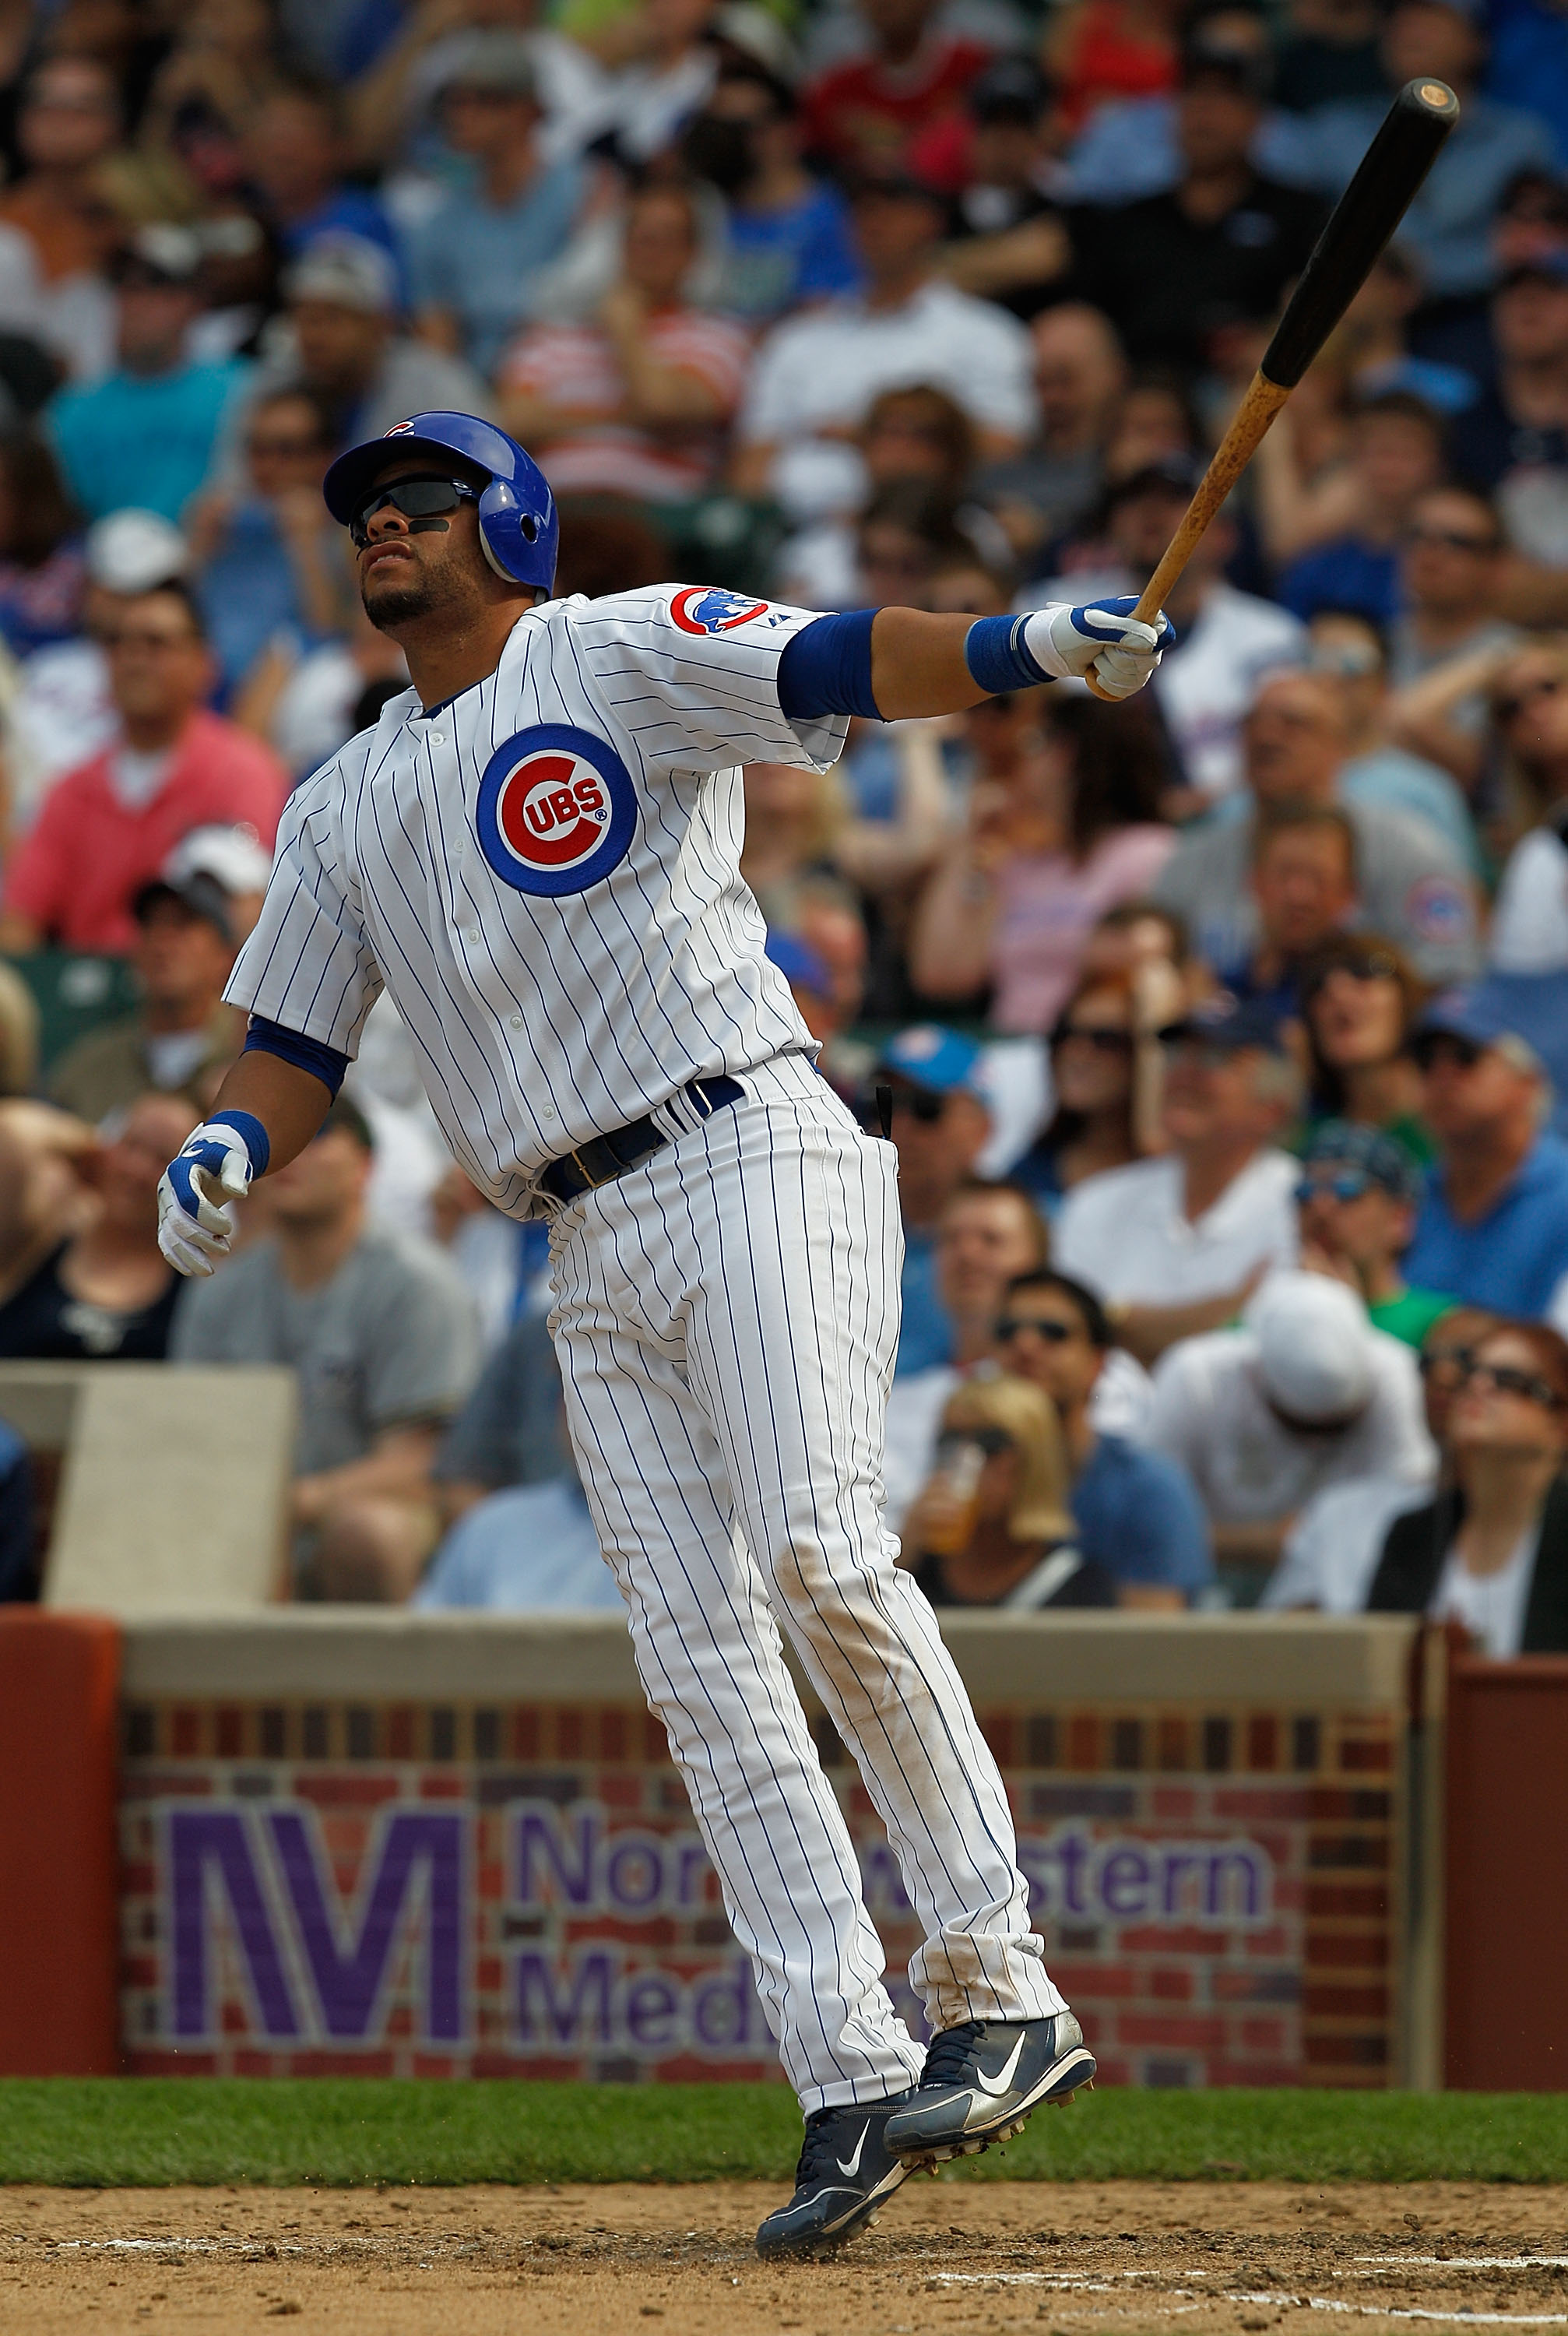 CHICAGO - APRIL 15: Aramis Ramirez of the Chicago Cubs, wearing a number 42 jersey in honor of Jackie Robinson, hops after hitting a home run against the Milwaukee Brewers in the 6th inning at Wrigley Field on April 15, 2010 in Chicago, Illinois. (Photo b